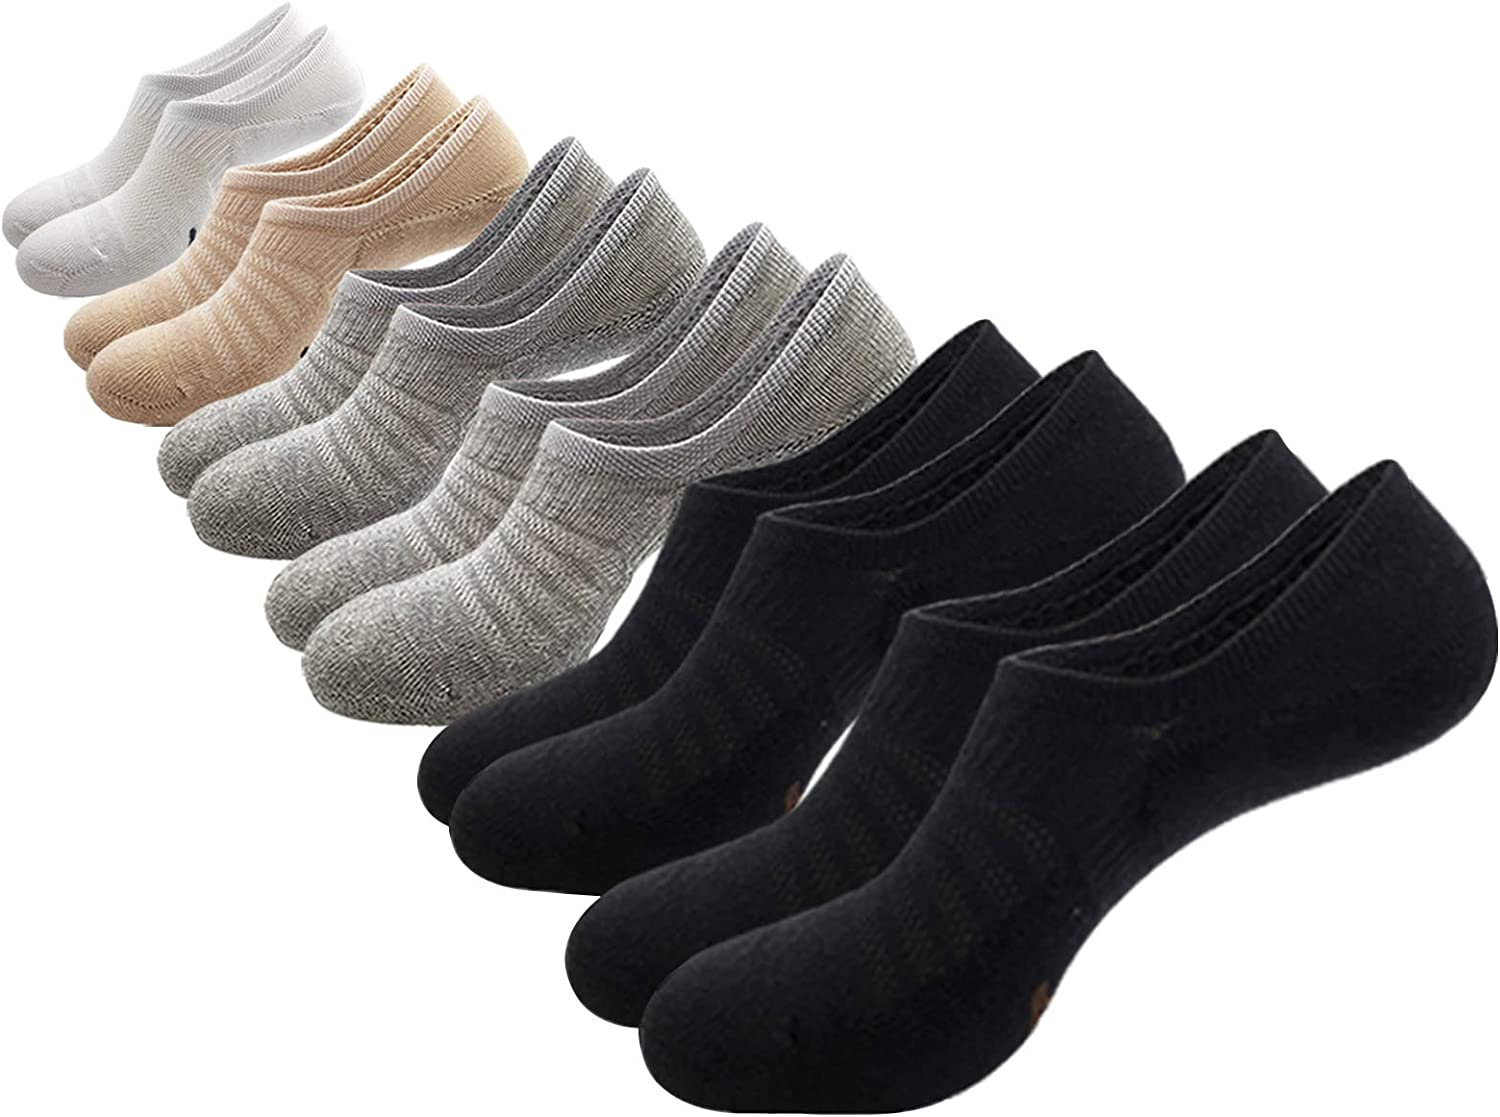 PEACE OF FOOT No Show Socks Cushion Cotton Atheletic Non Slip 6Pairs